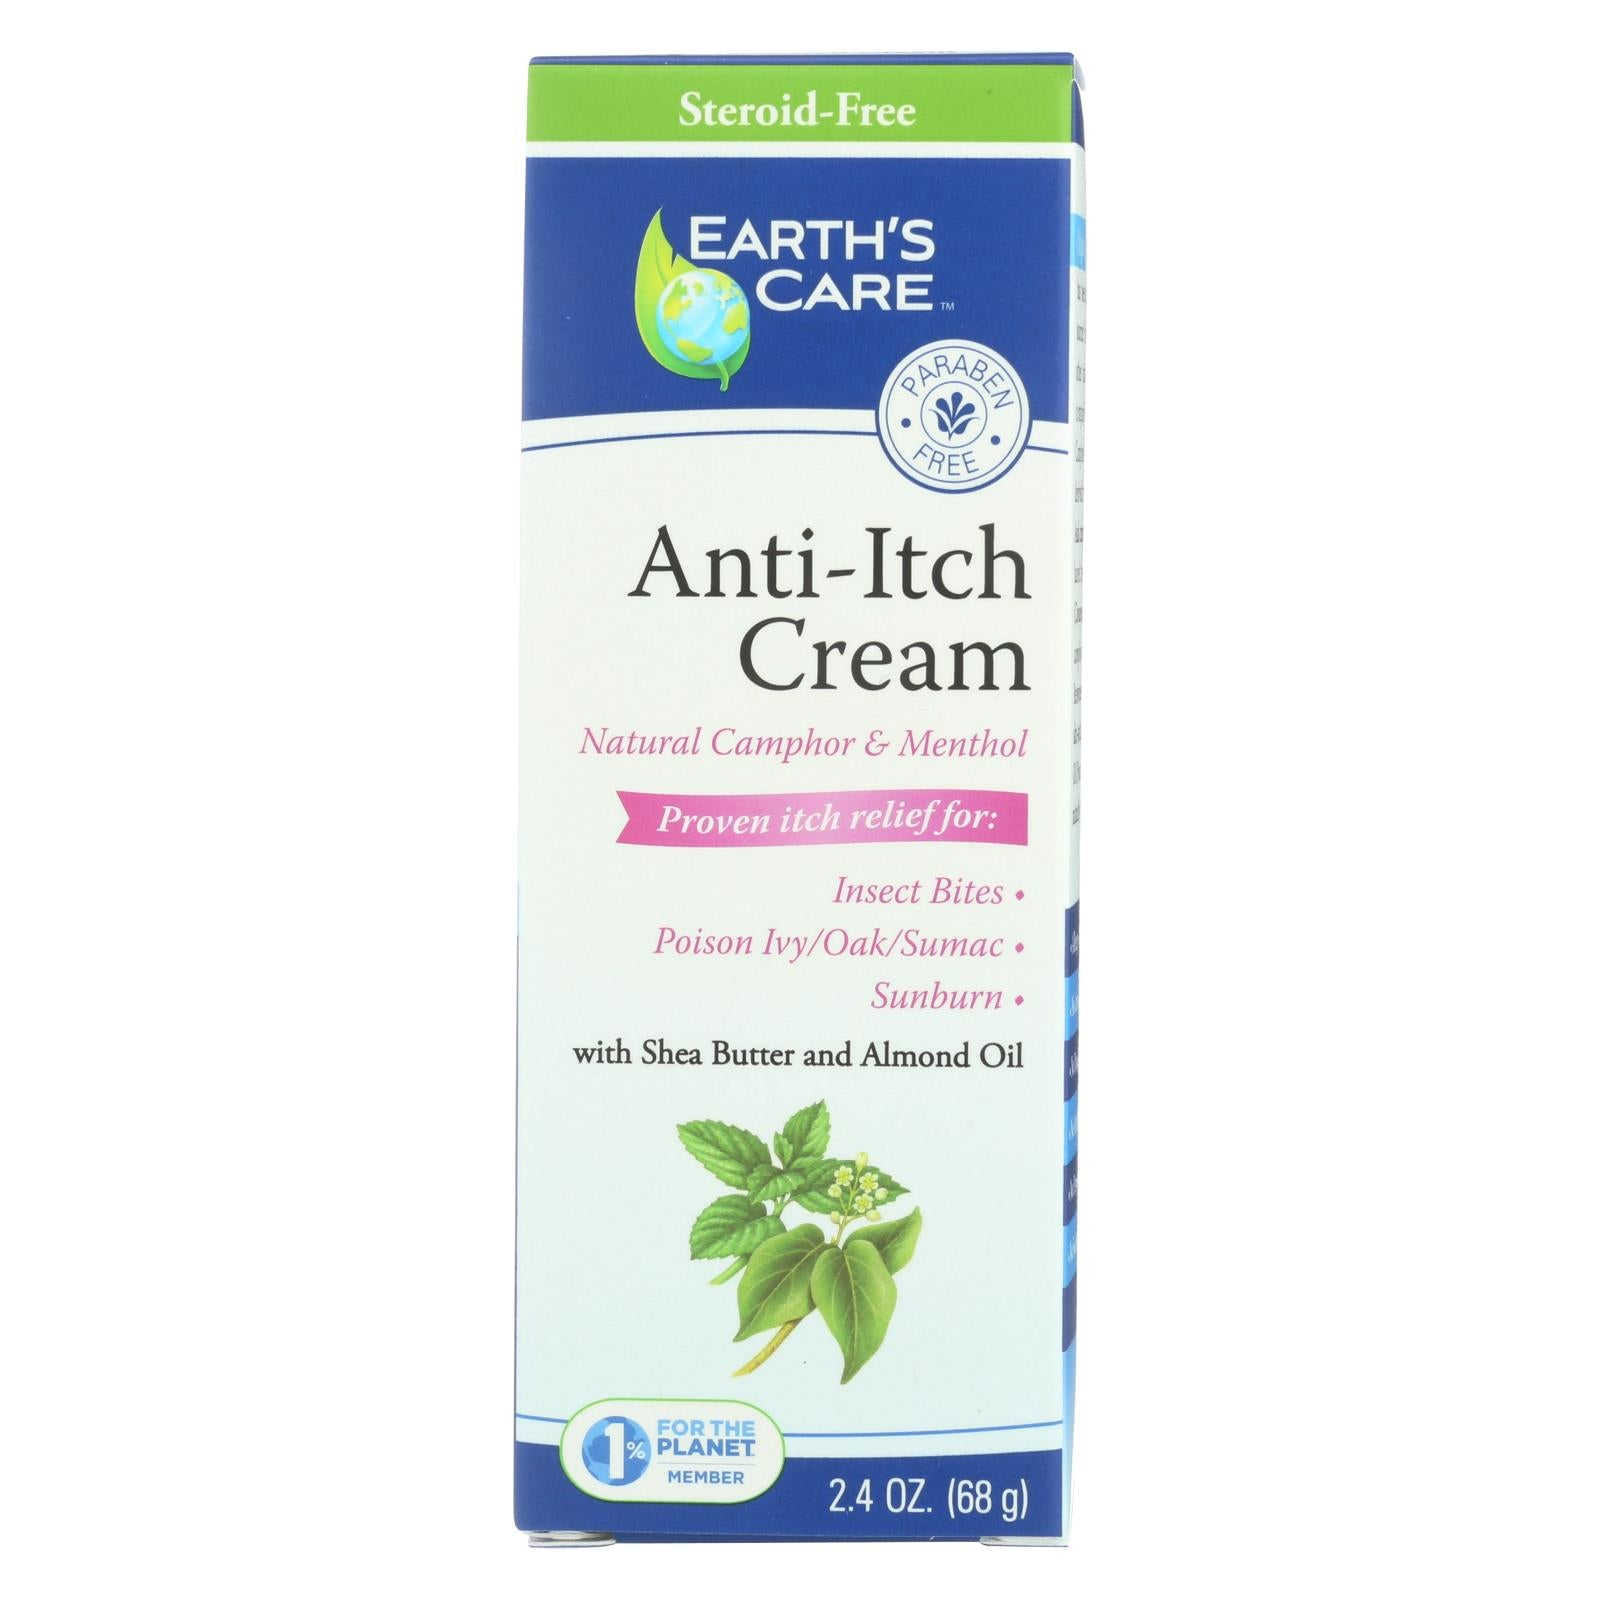 Buy Earth's Care Anti-Itch Cream - 2.4 oz - First Aid from Veroeco.com